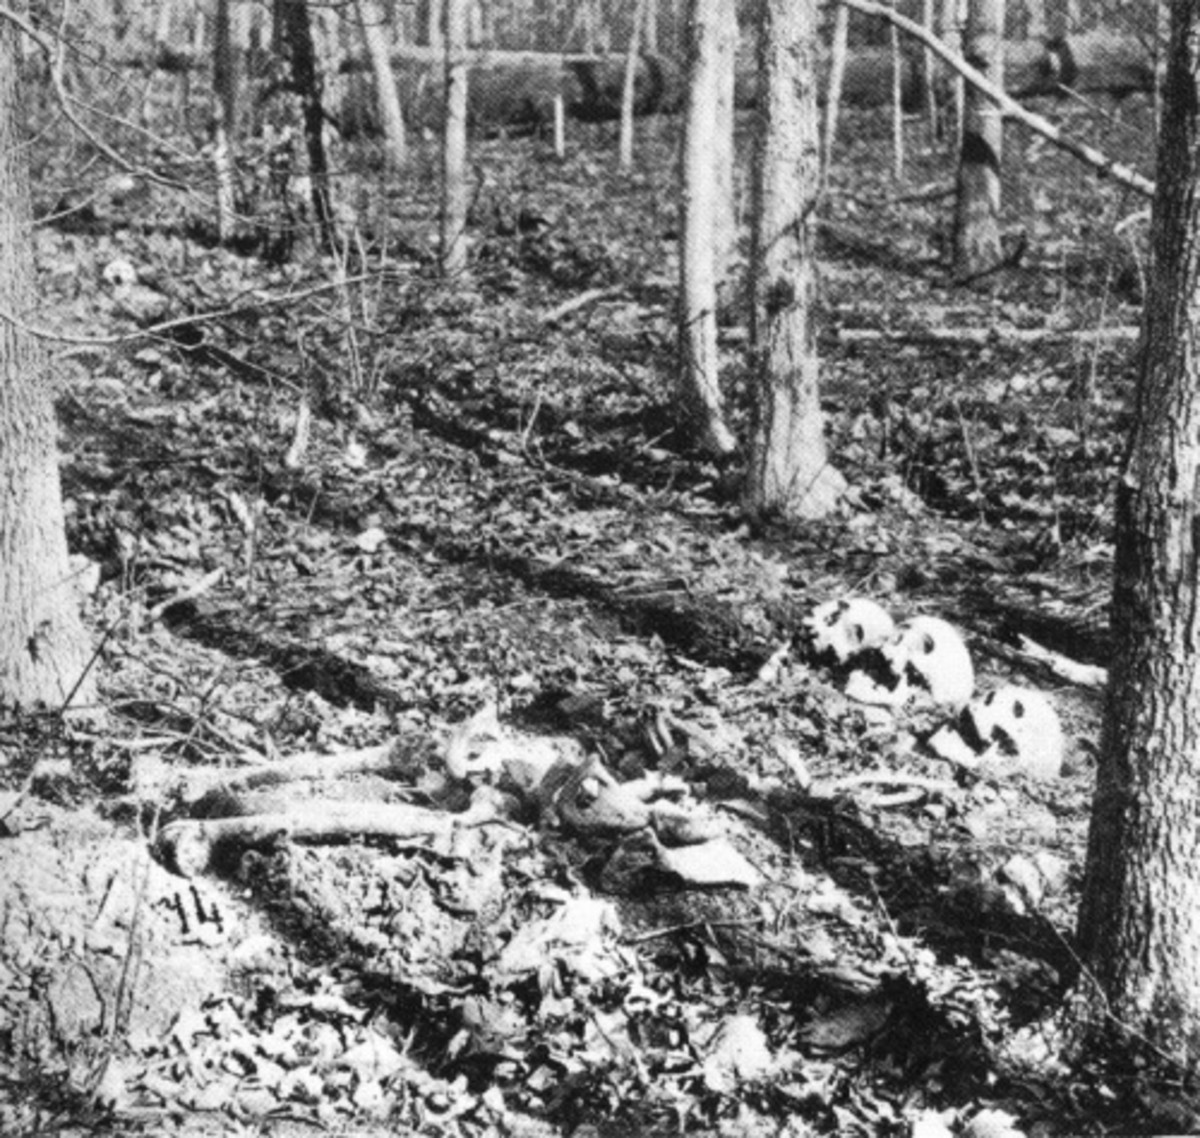 Erosion exposed the graves of these skeletons in the Wilderness, VA